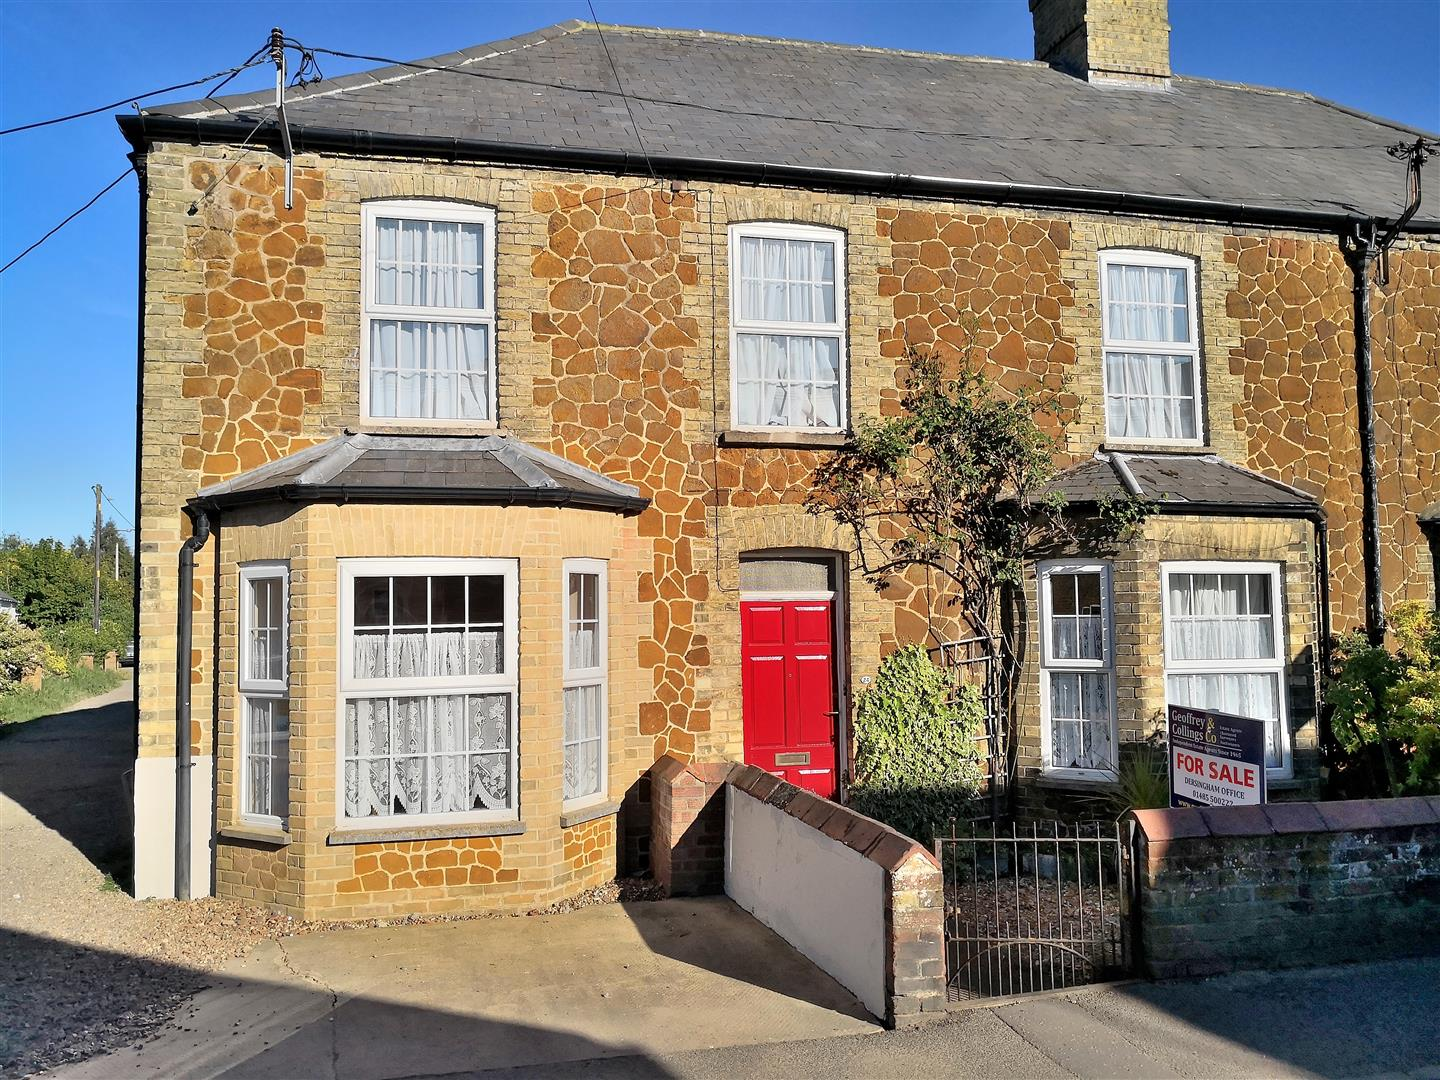 5 bed end of terrace house for sale in King's Lynn, PE31 7EP, PE31